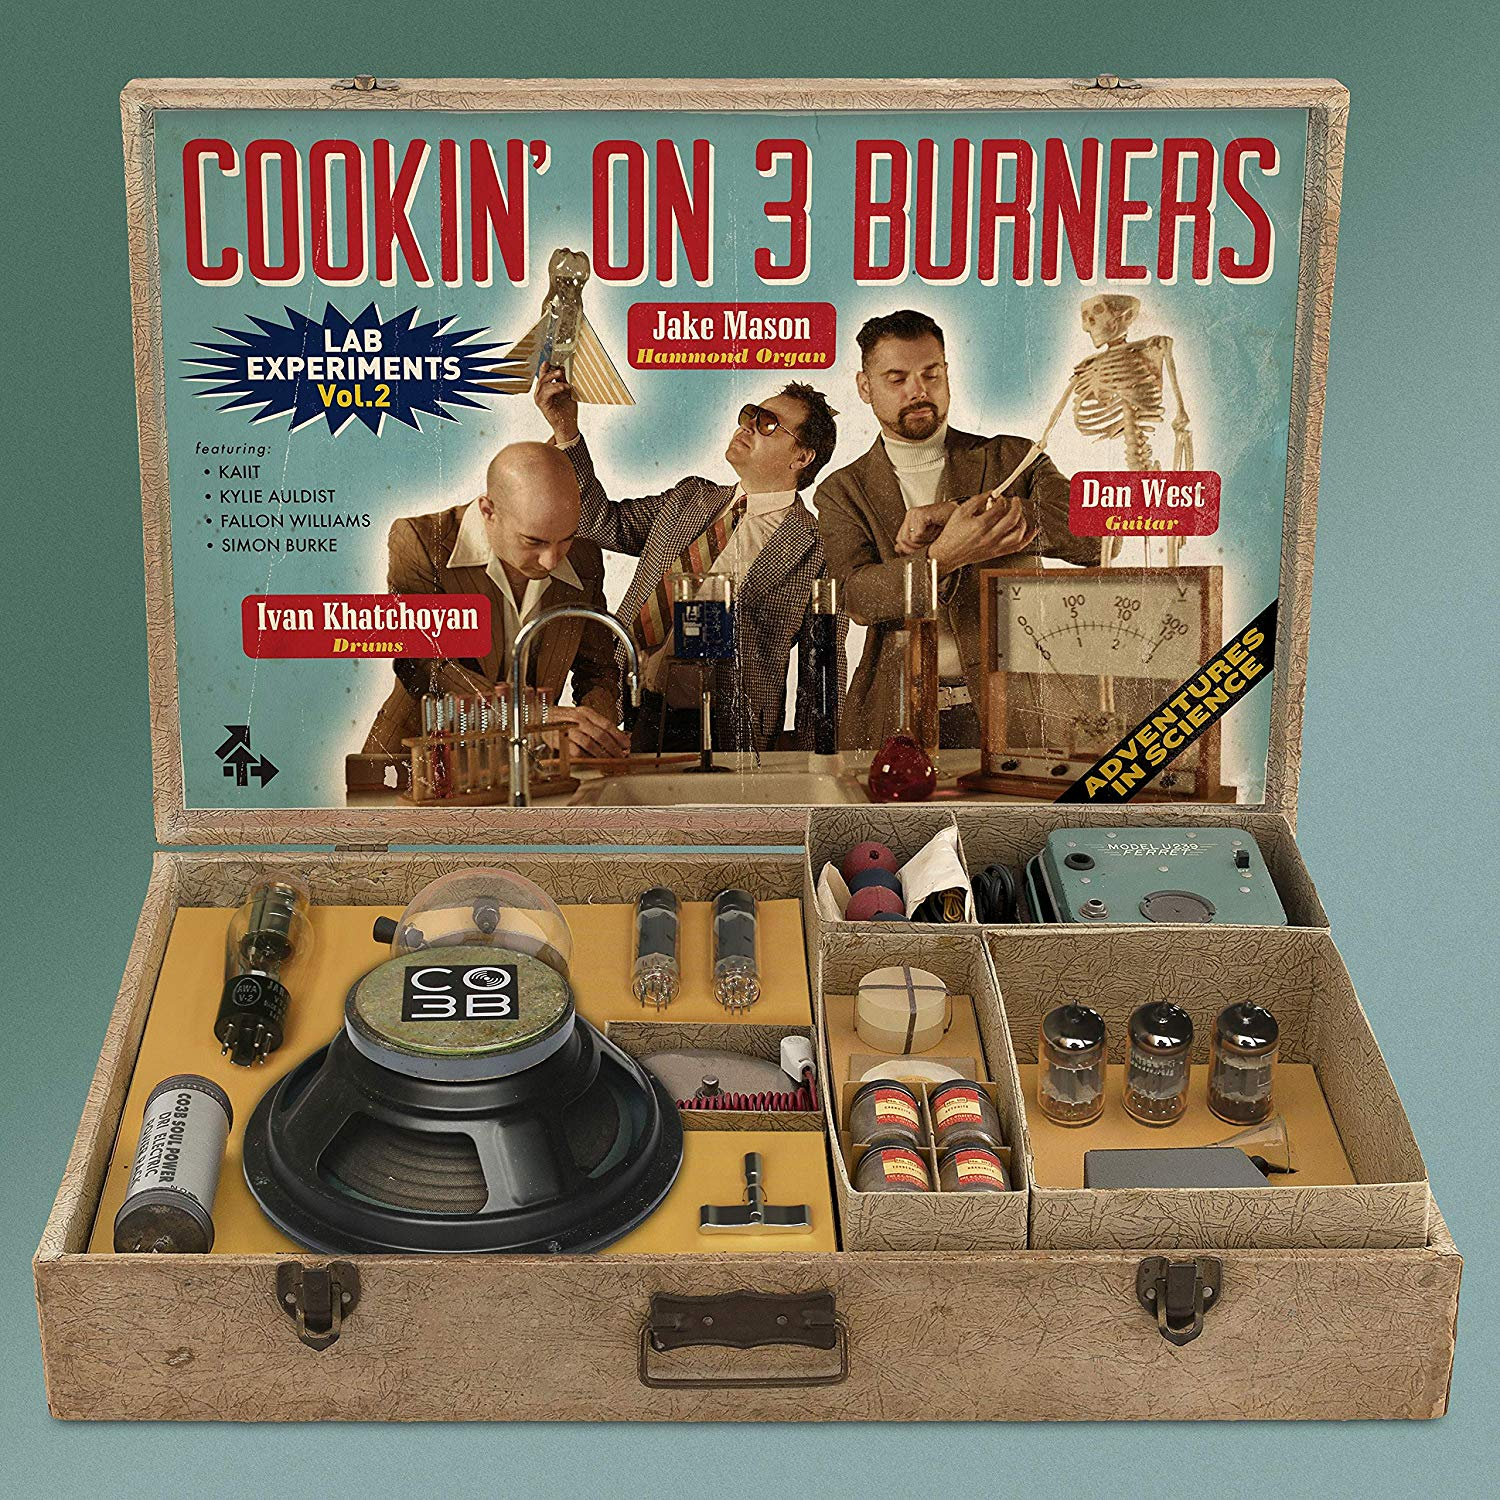 Cookin' On 3 Burners - Lab Experiments Vol. 2